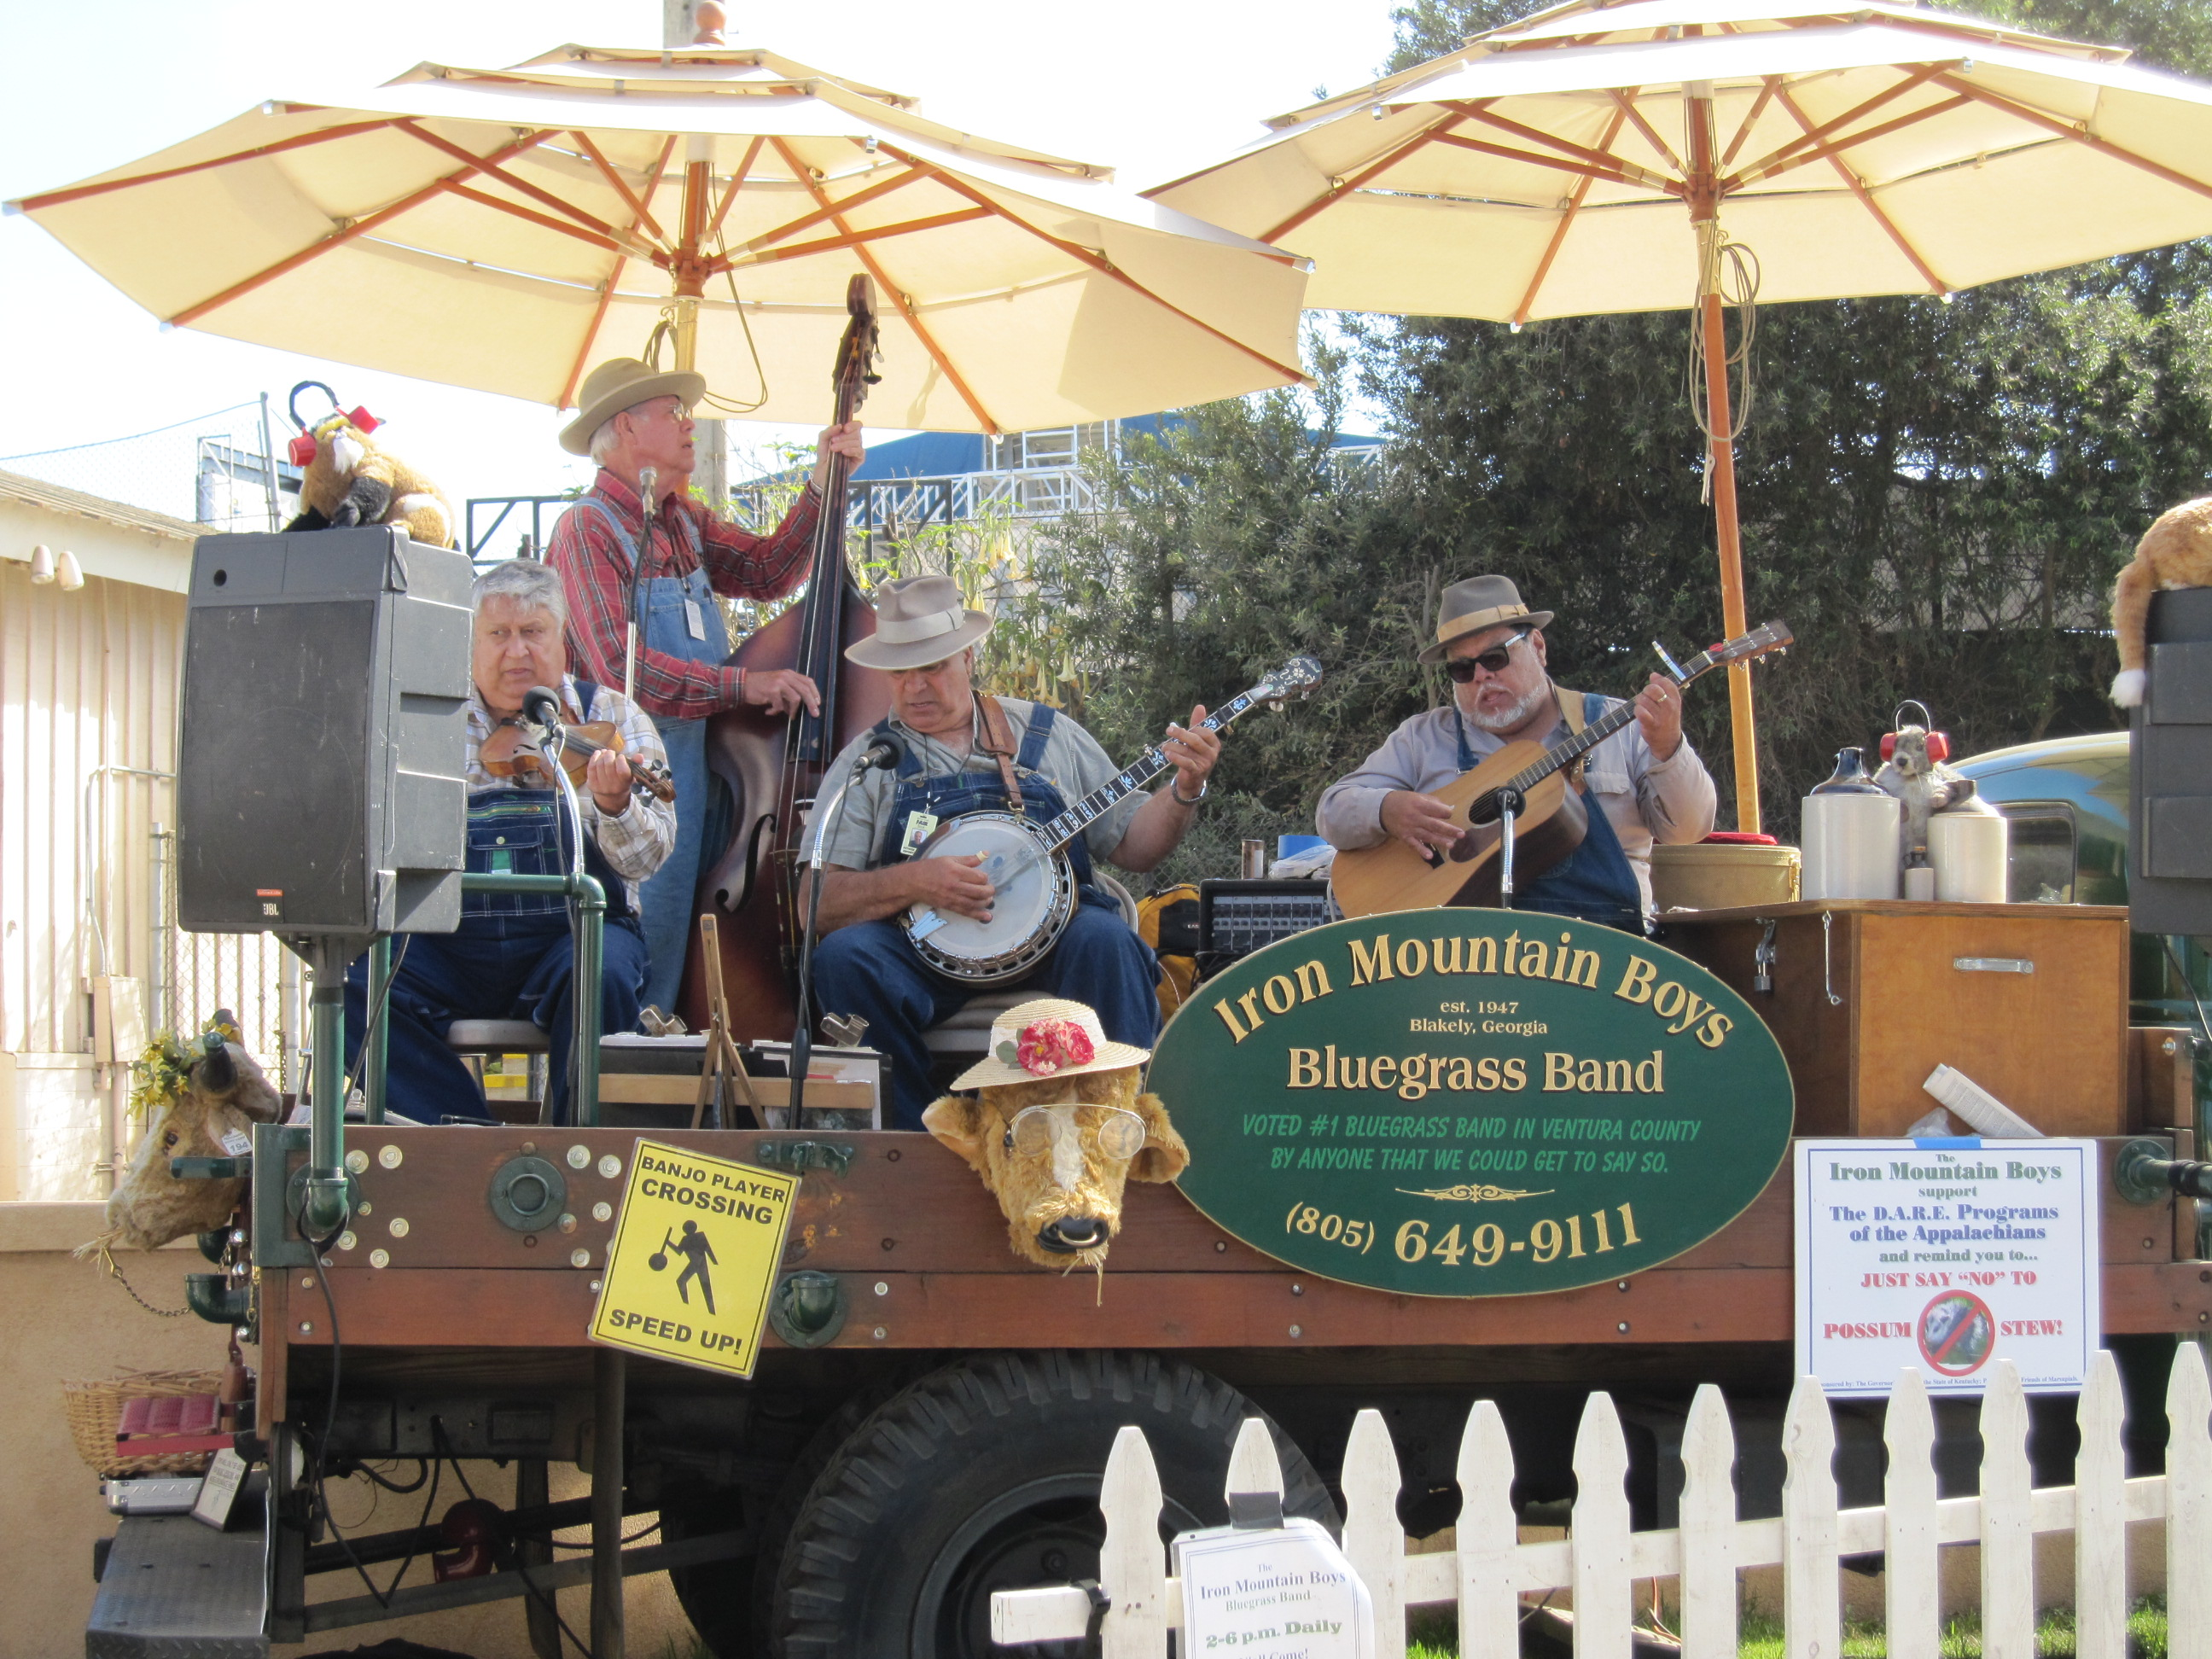 The good ol' boys and their Bluegrass Band